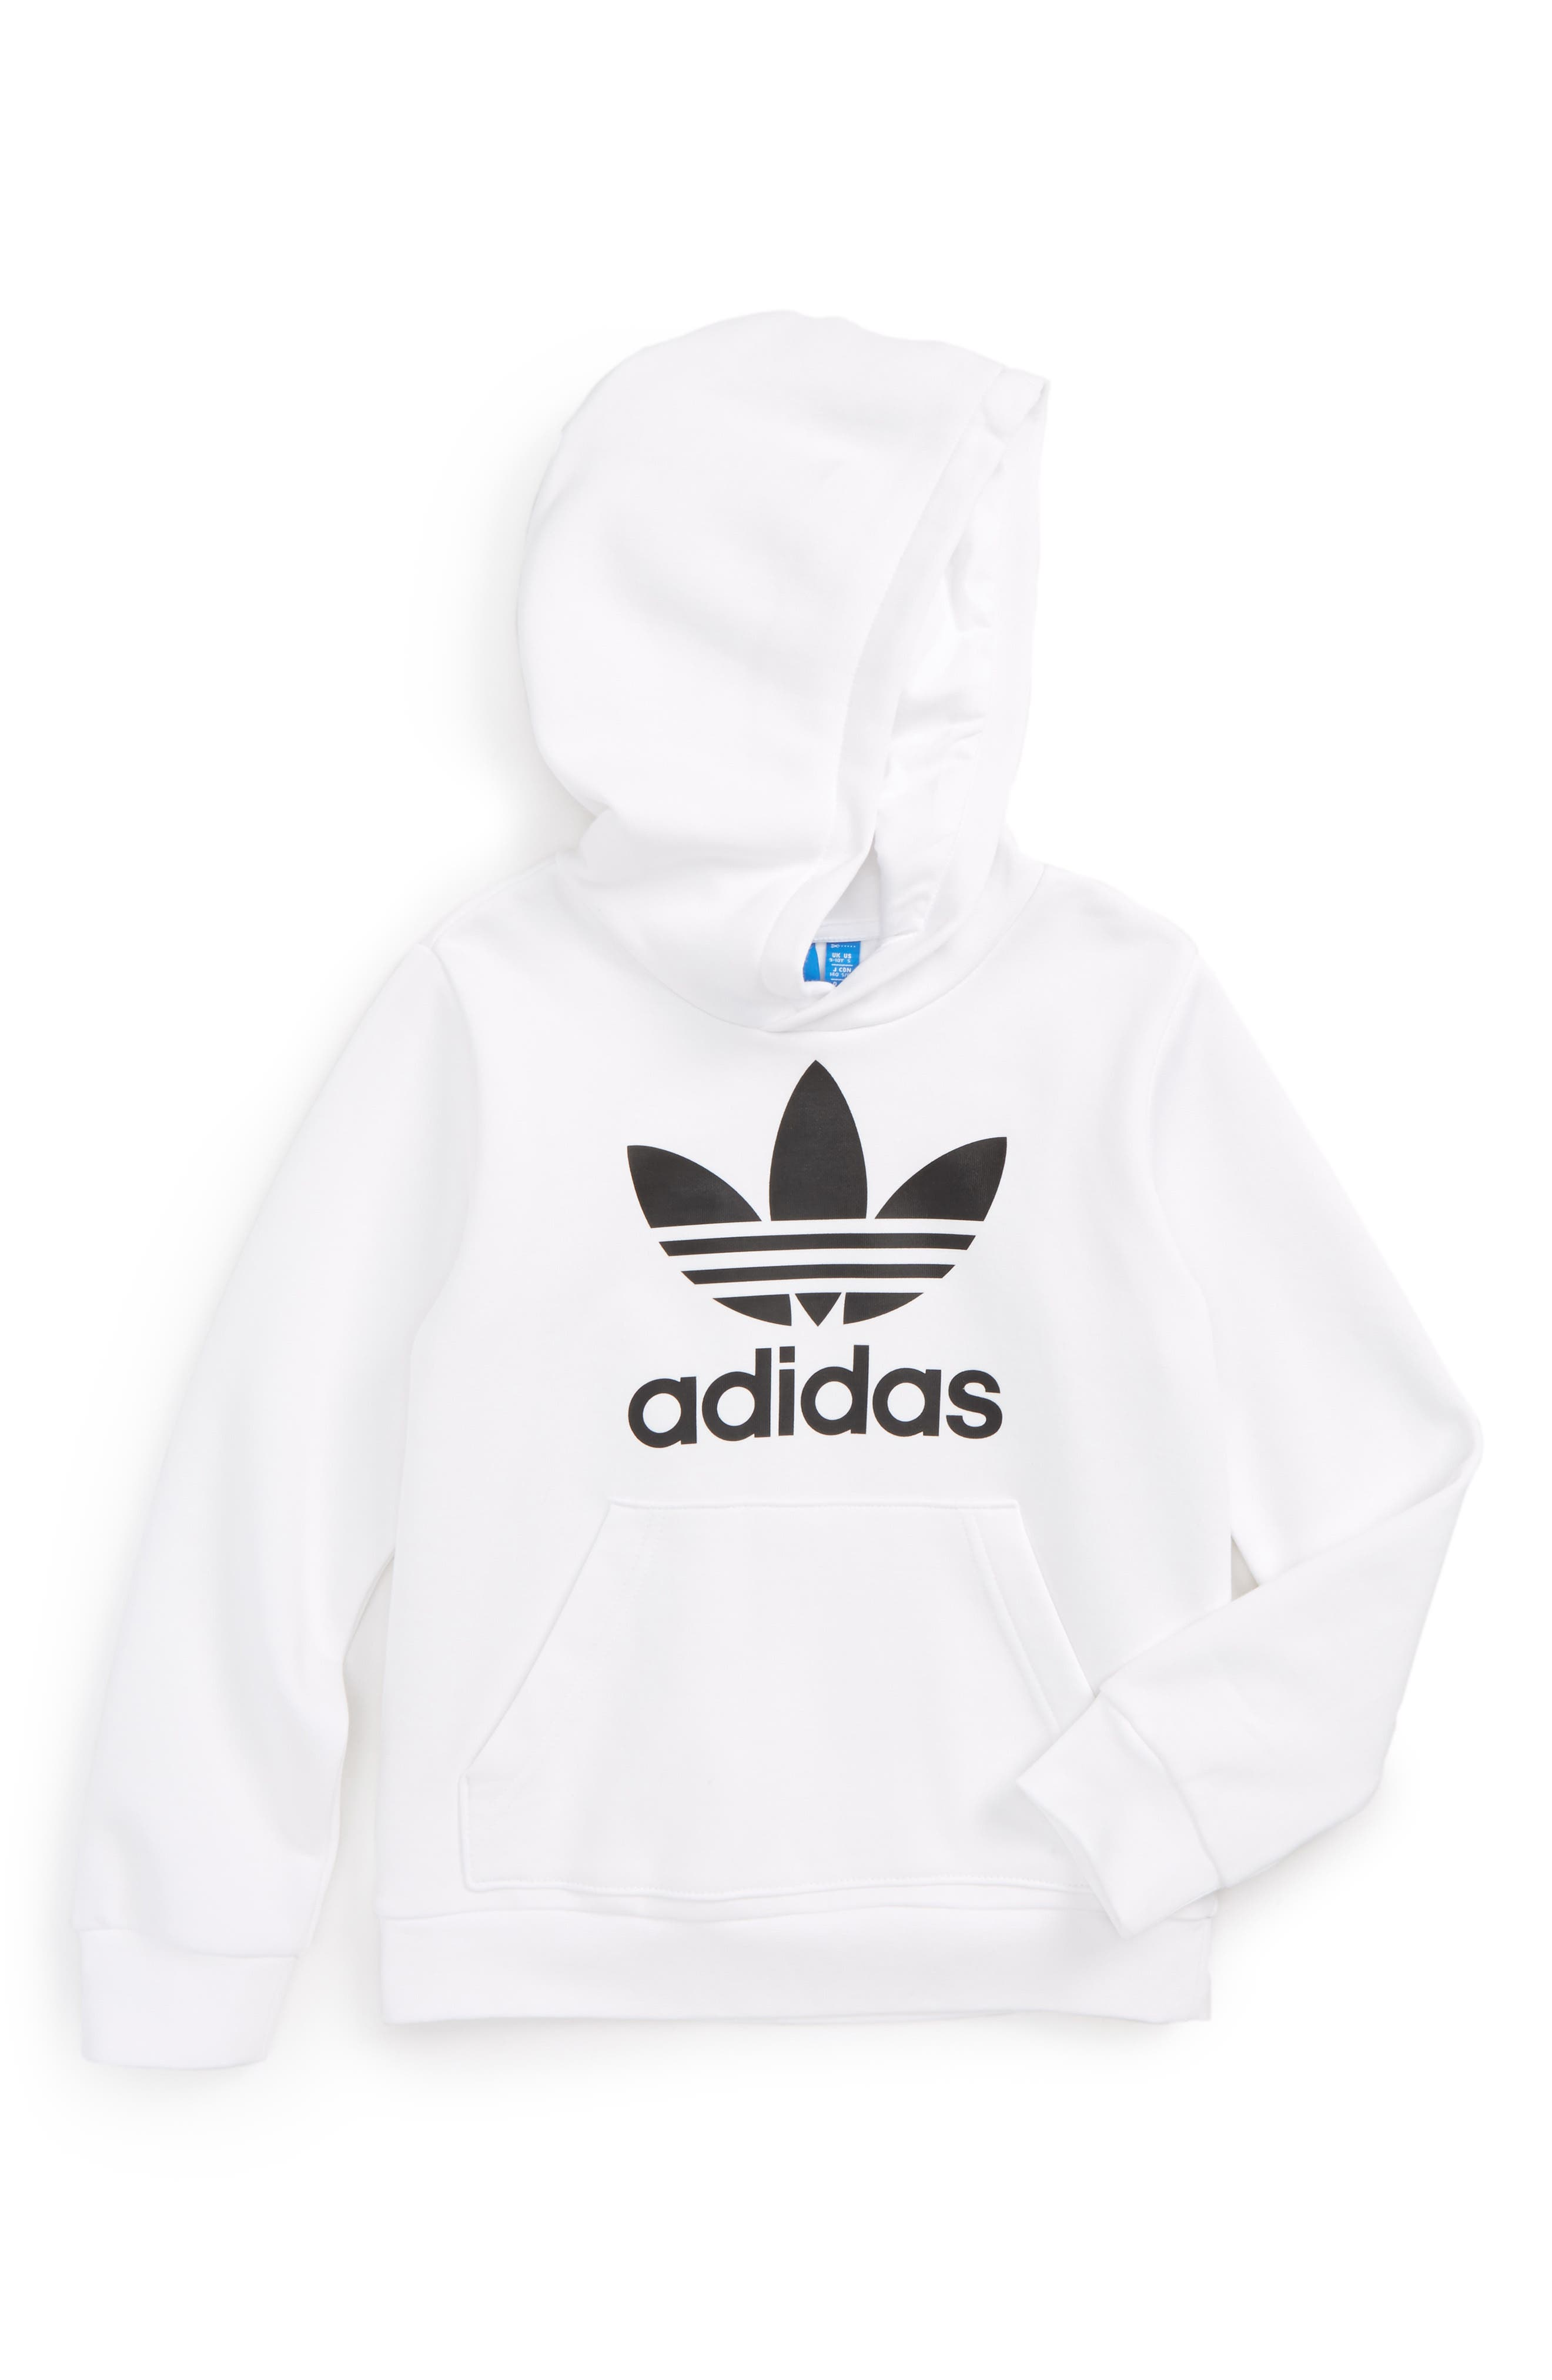 adidas nmd r1 red and black nike outlet store apparel hooded sweatshirts